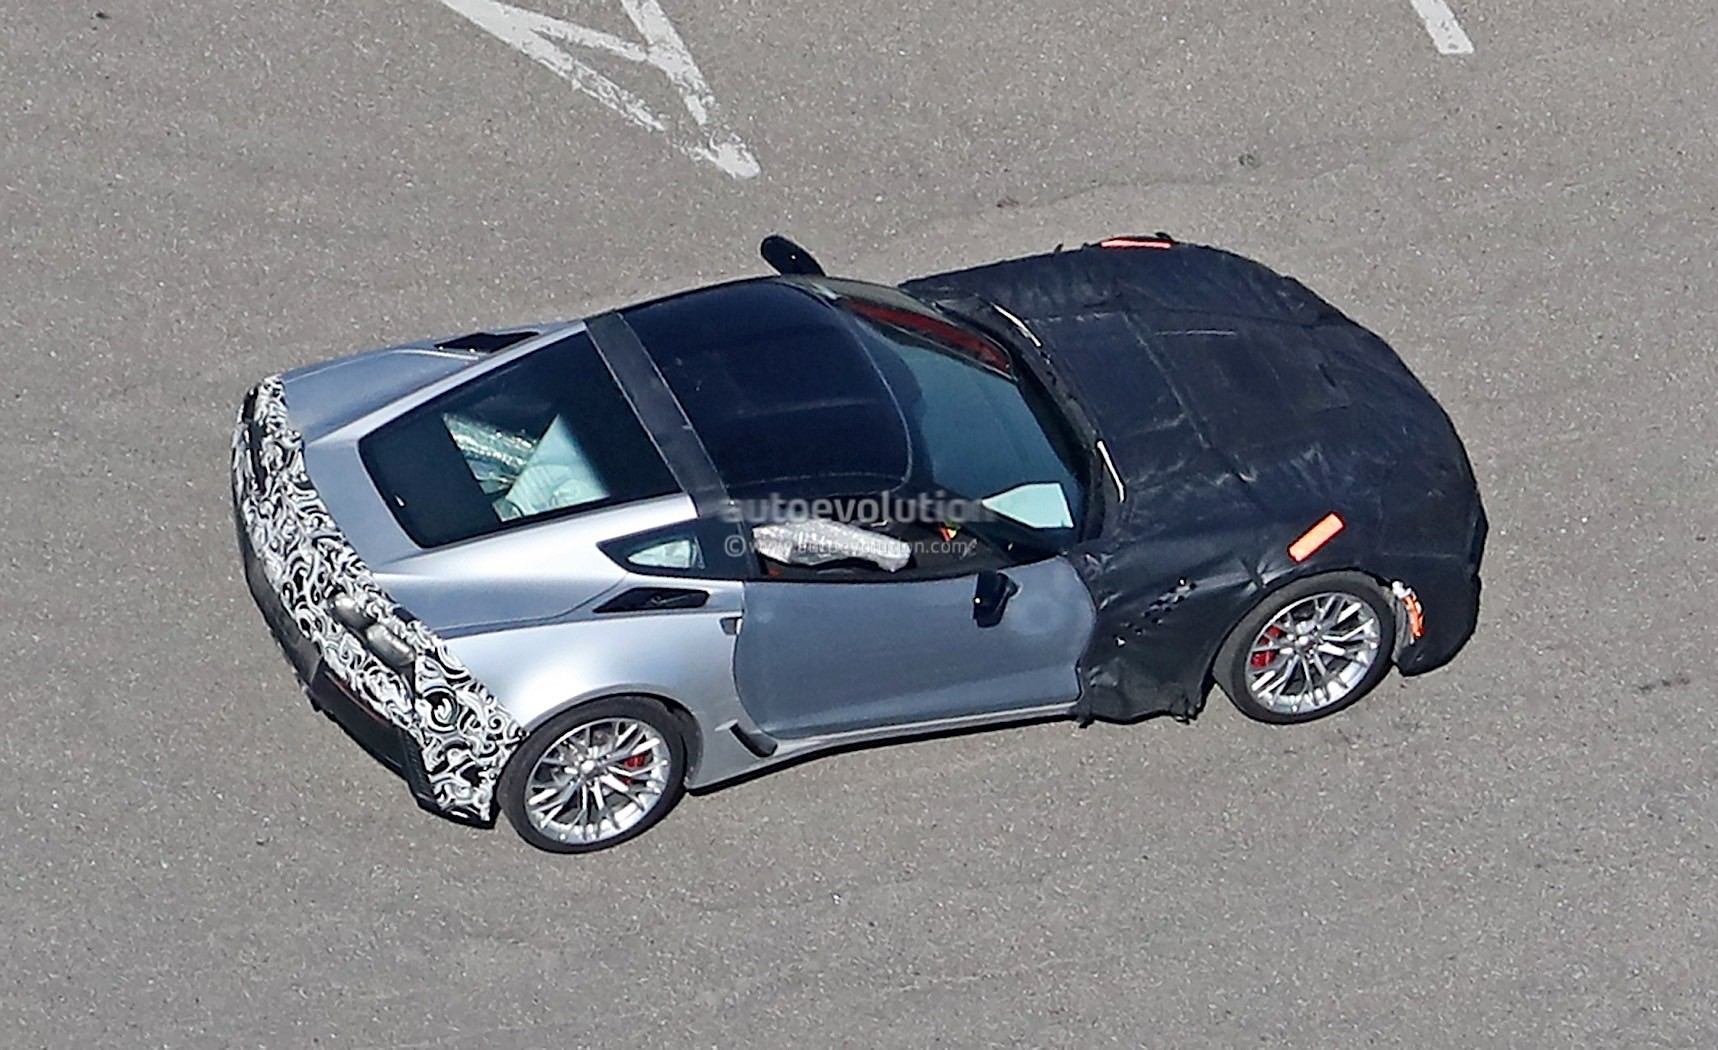 Possible 2018 Chevrolet Corvette Zr1 Prototype Spied From